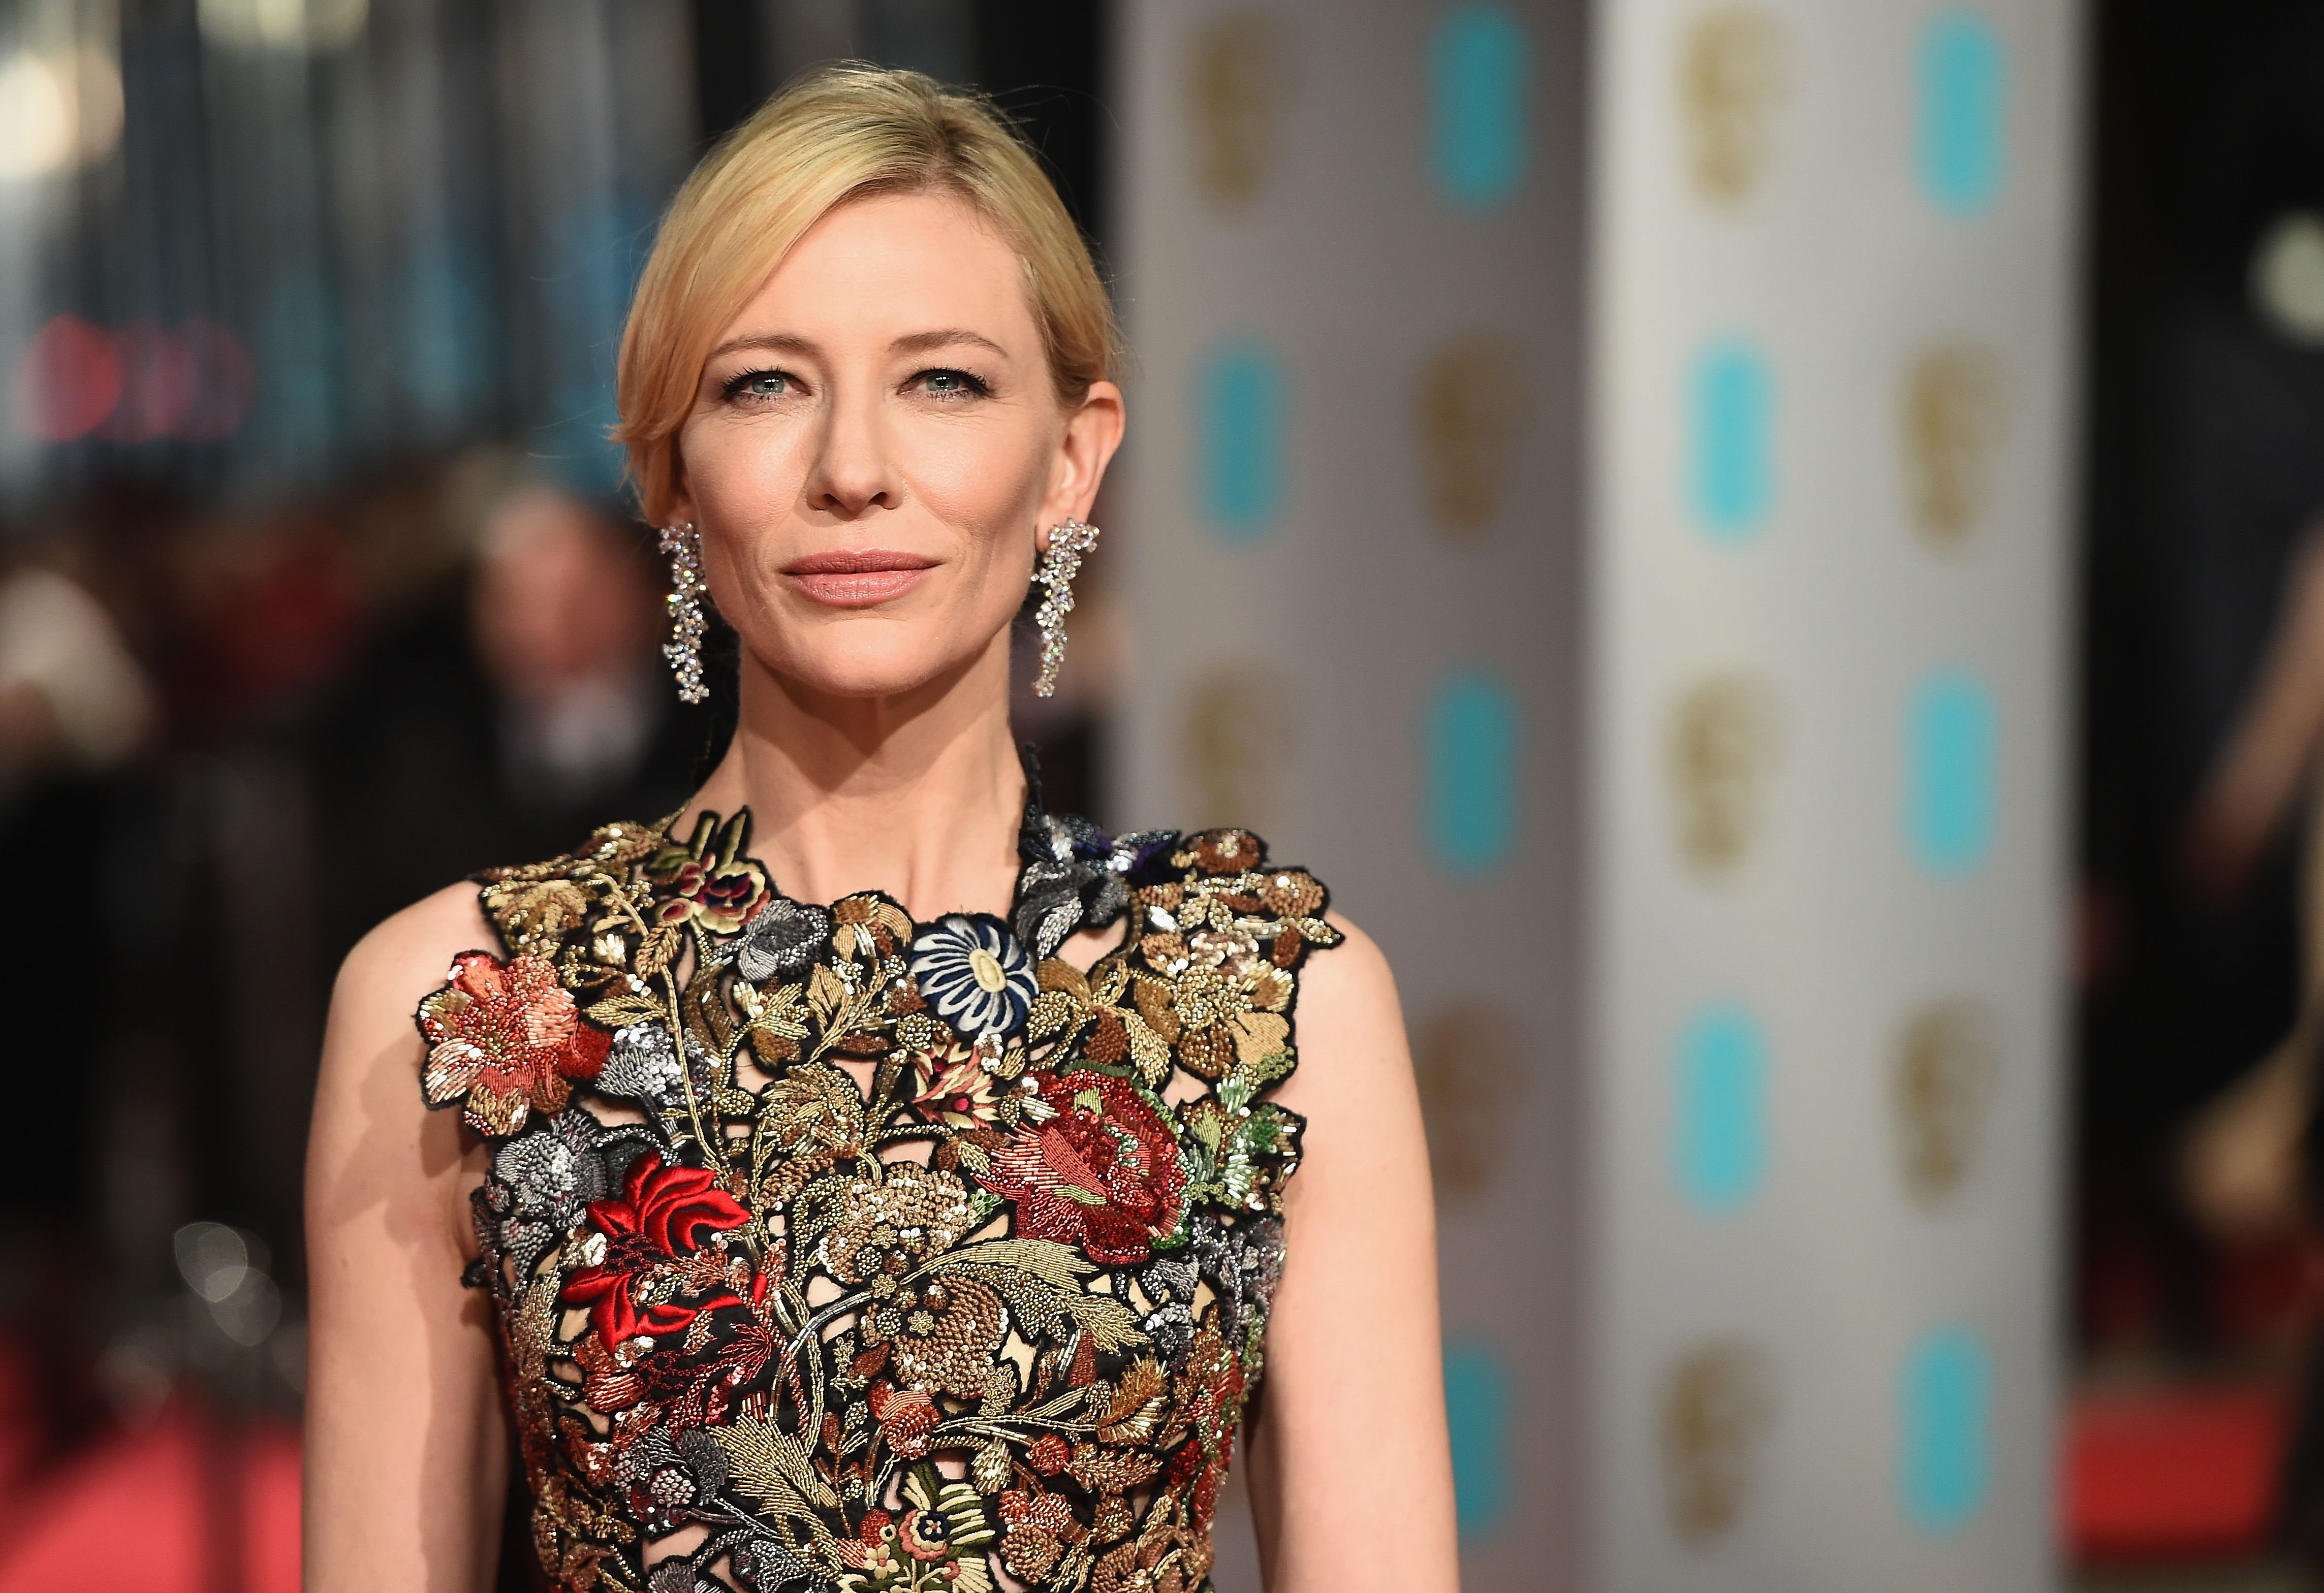 Pussy Cate Blanchett nude (97 foto and video), Ass, Hot, Selfie, bra 2020